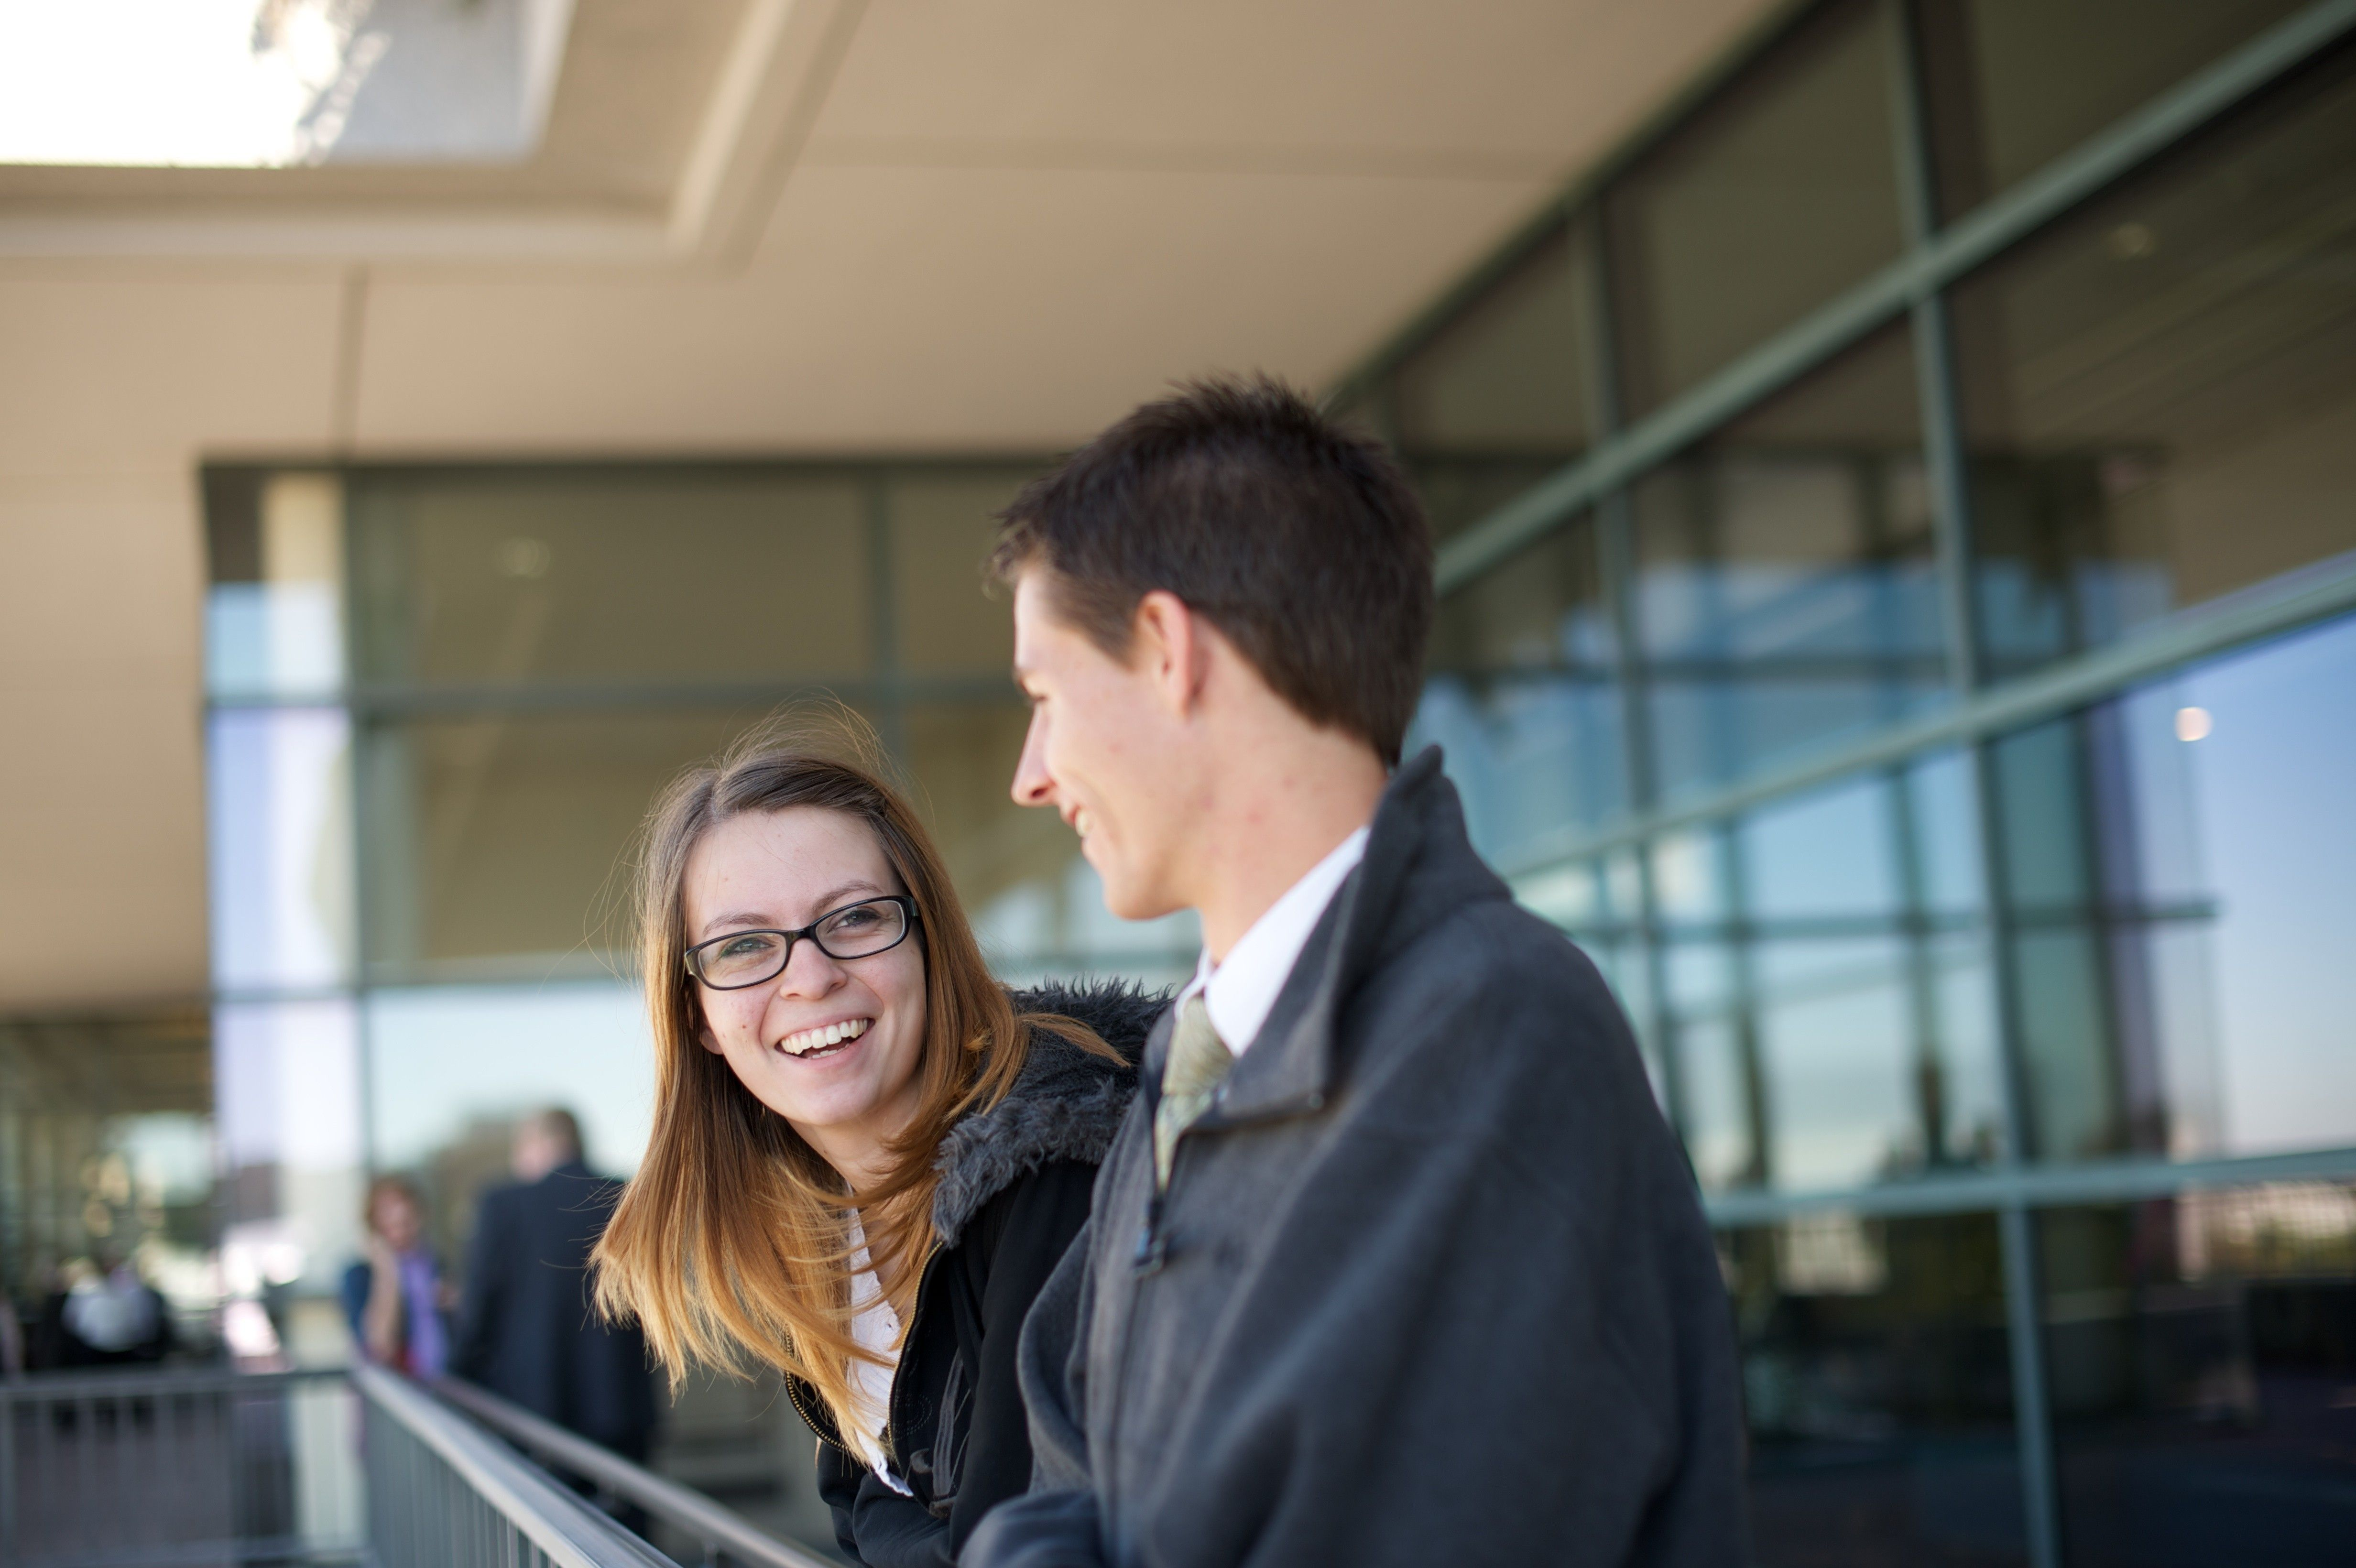 A man and woman smiling while standing outside the Conference Center.